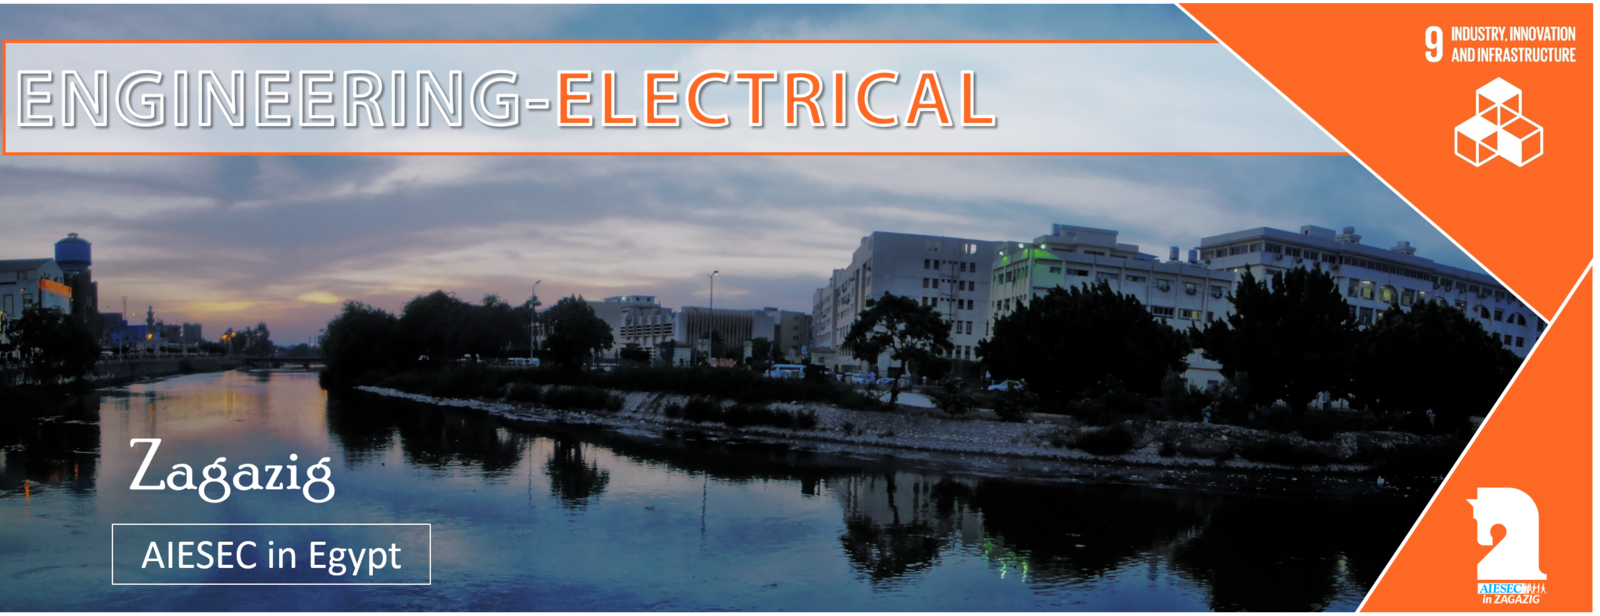 Electrical Engineering Opportunity in Egypt #9